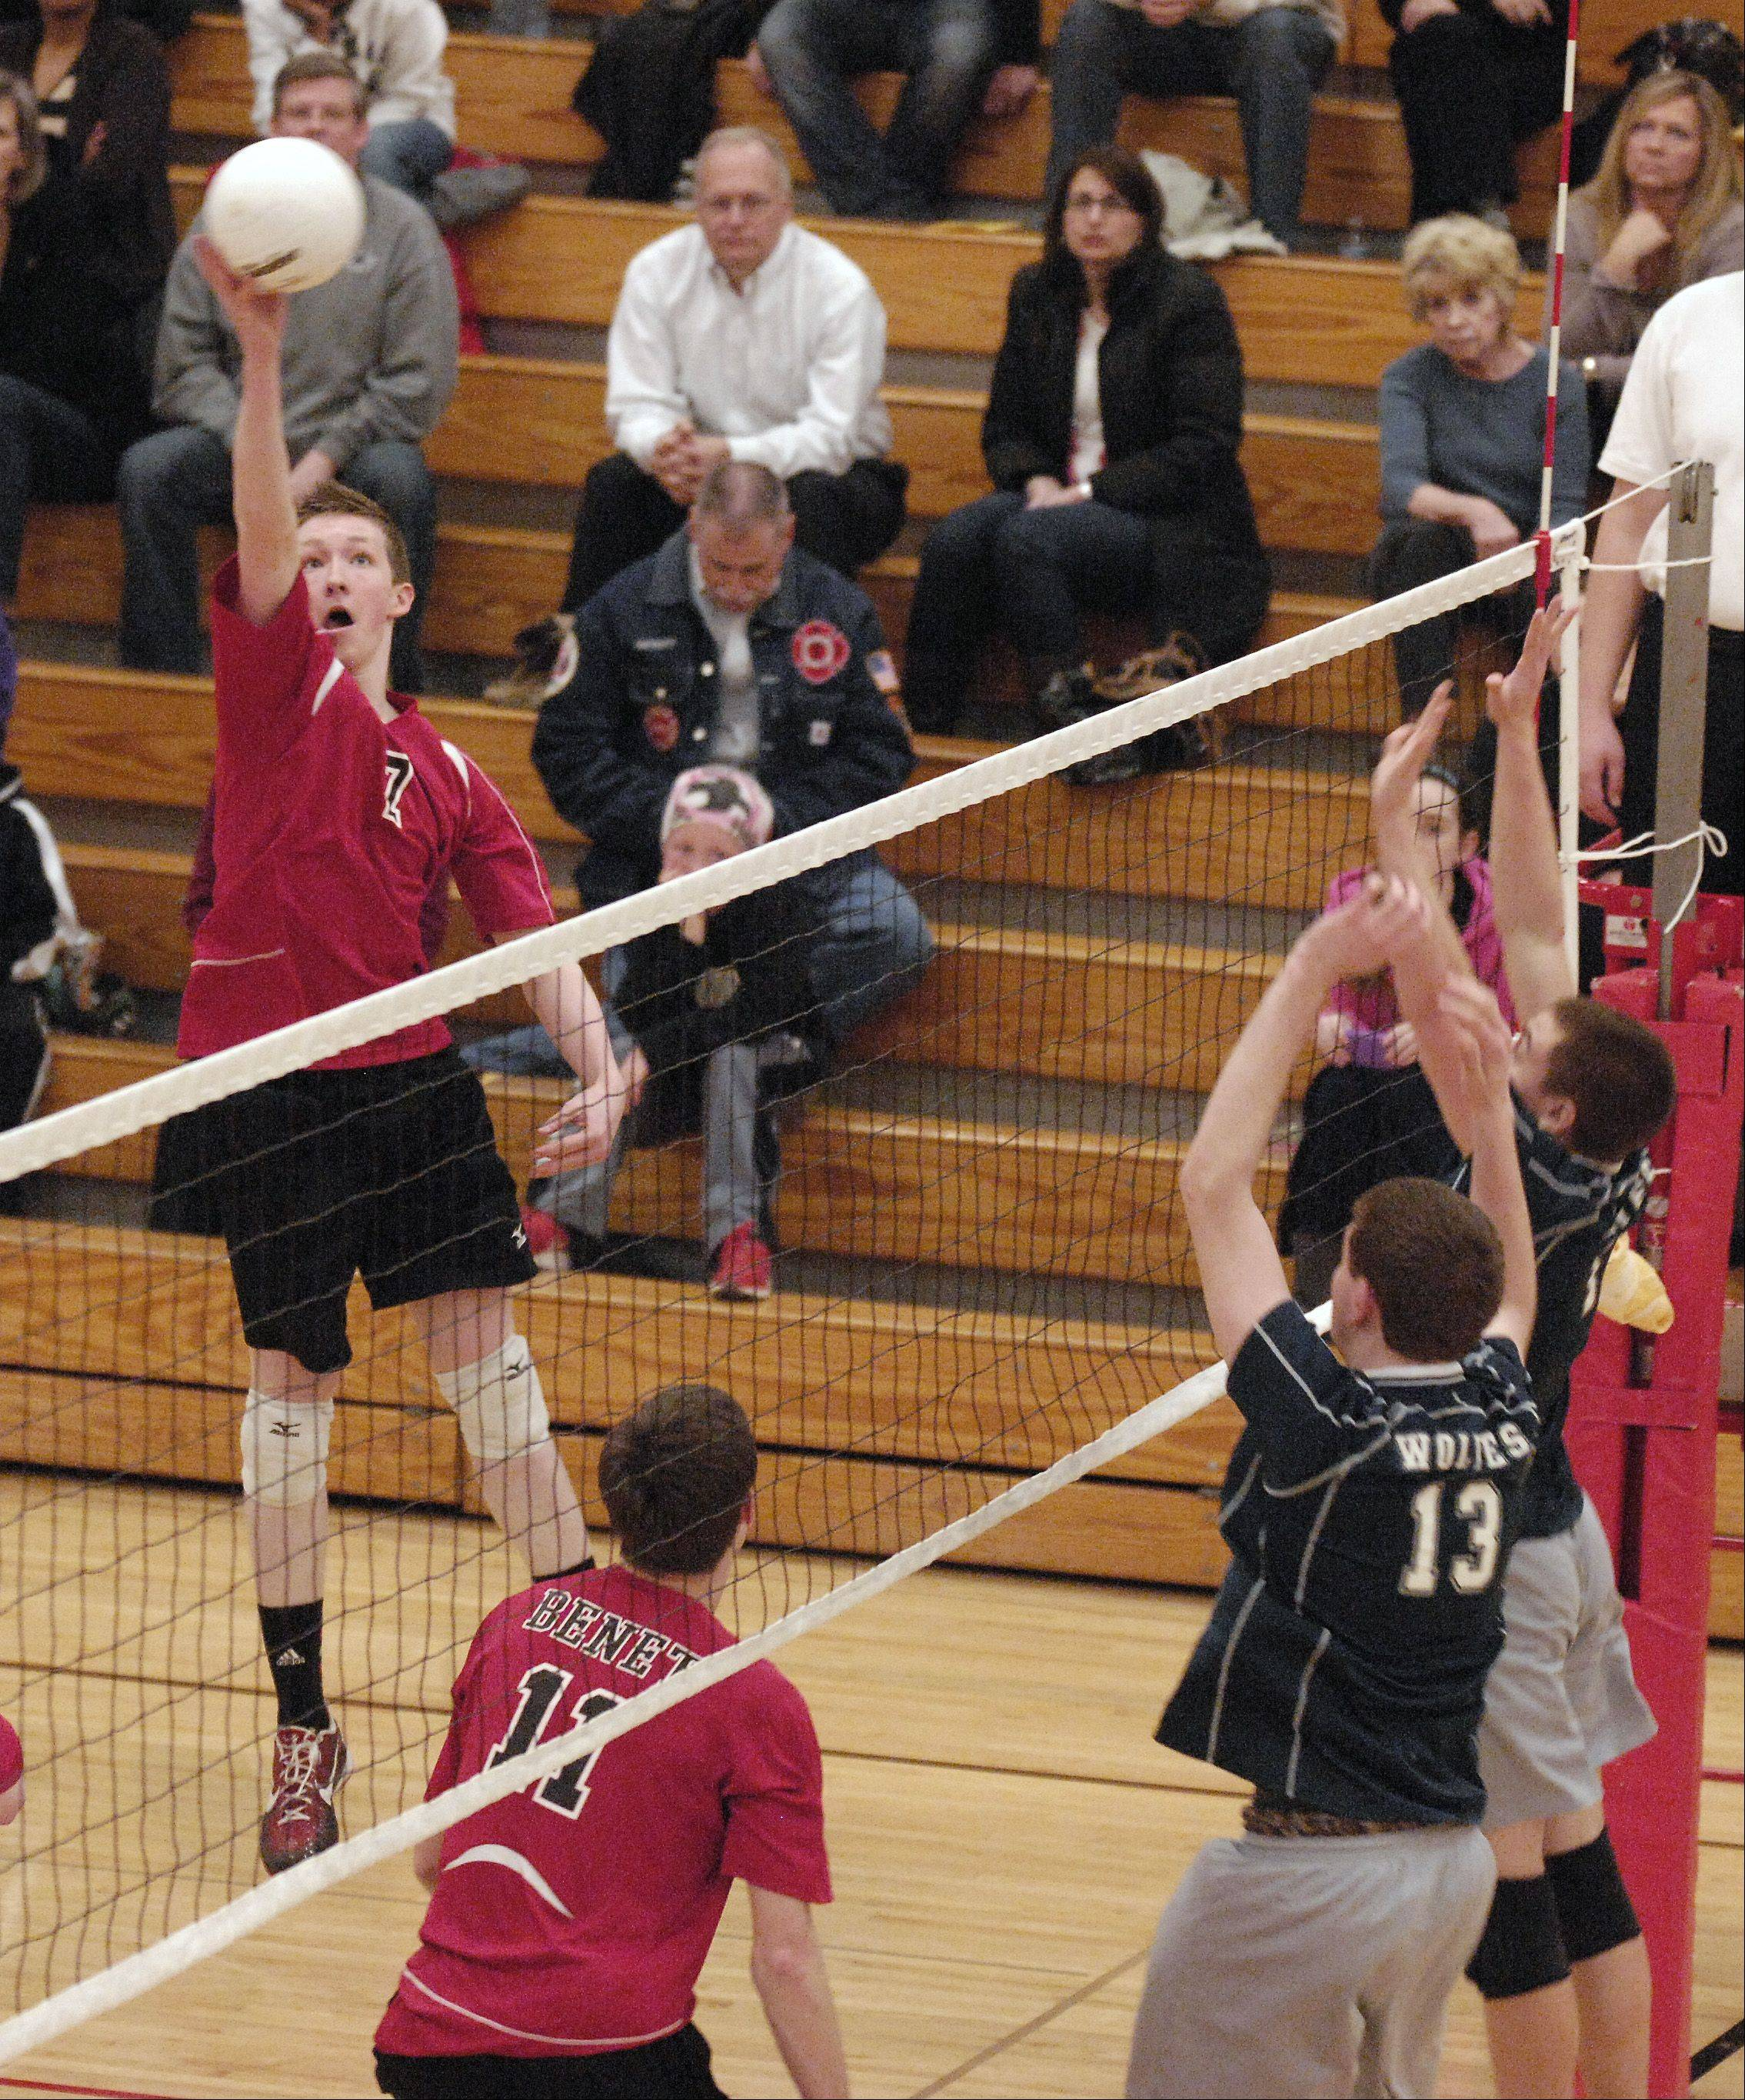 Scott Kleiser of Benet Academy fires one past Oswego East during boys varsity volleyball, Wednesday at home.